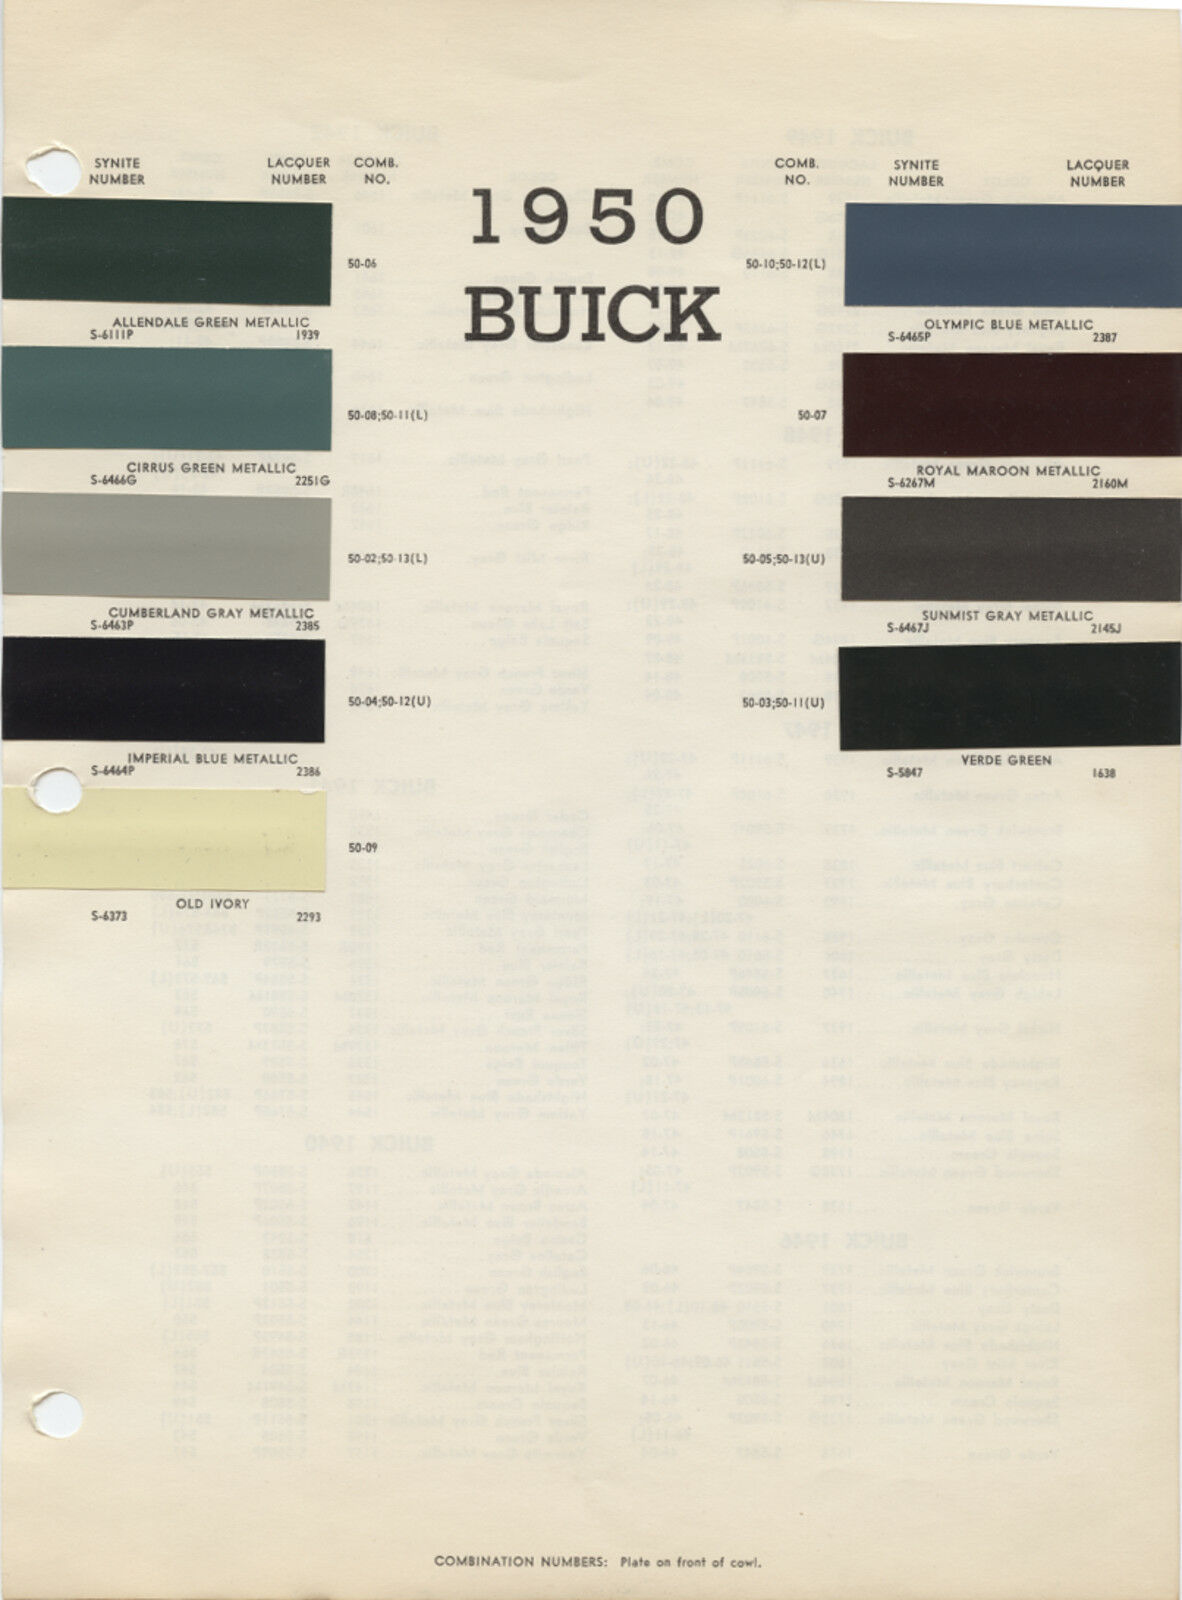 1950 50 Buick Color Paint Chips Chart 539 Picclick Uk 1968 Dodge 1 Of 2only Available